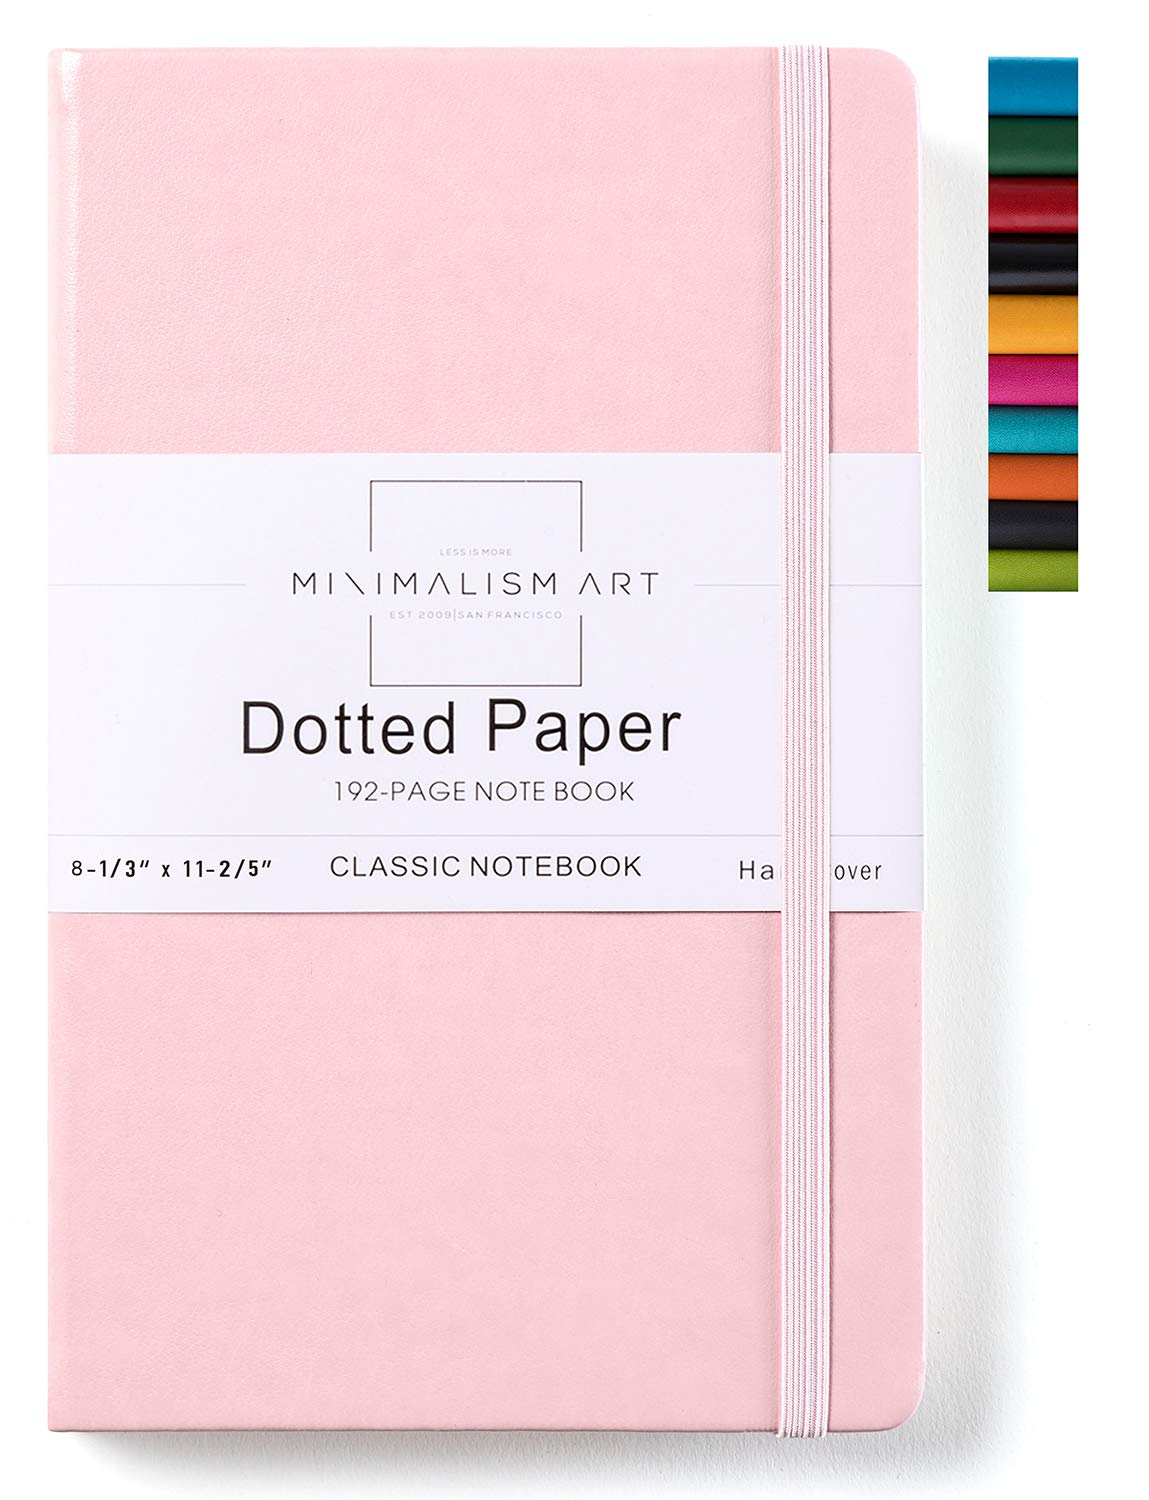 Minimalism Art, Classic Notebook Journal, A4 Size 8.3 X 11.4 inches, Pink, Dotted Grid Page, 192 Pages, Hard Cover, Fine PU Leather, Inner Pocket, Quality Paper-100gsm, Designed in San Francisco